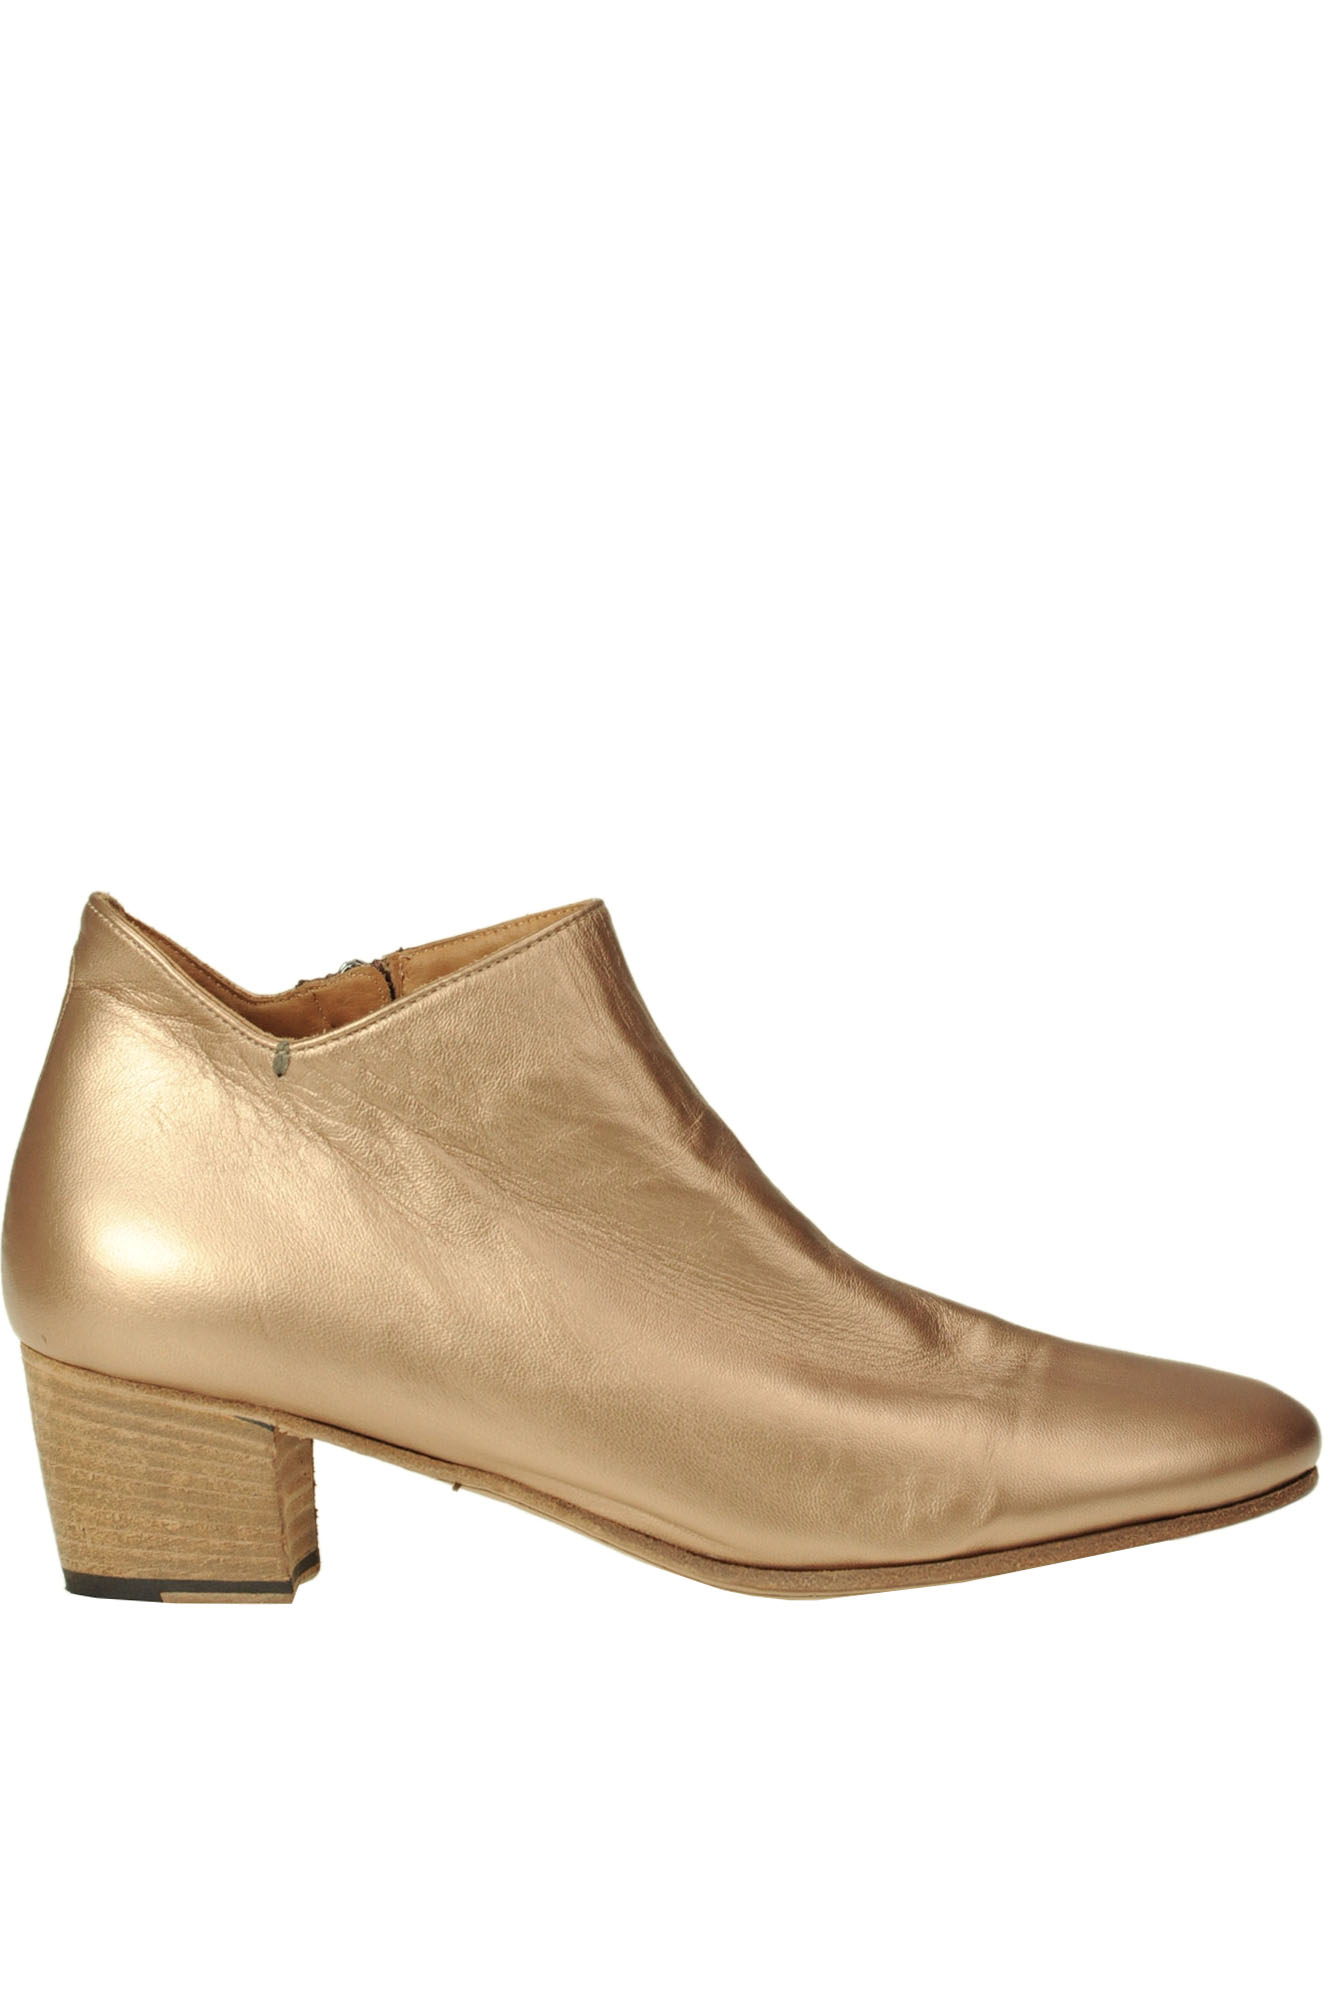 Pantanetti METALLIC EFFECT LEATHER ANKLE BOOTS